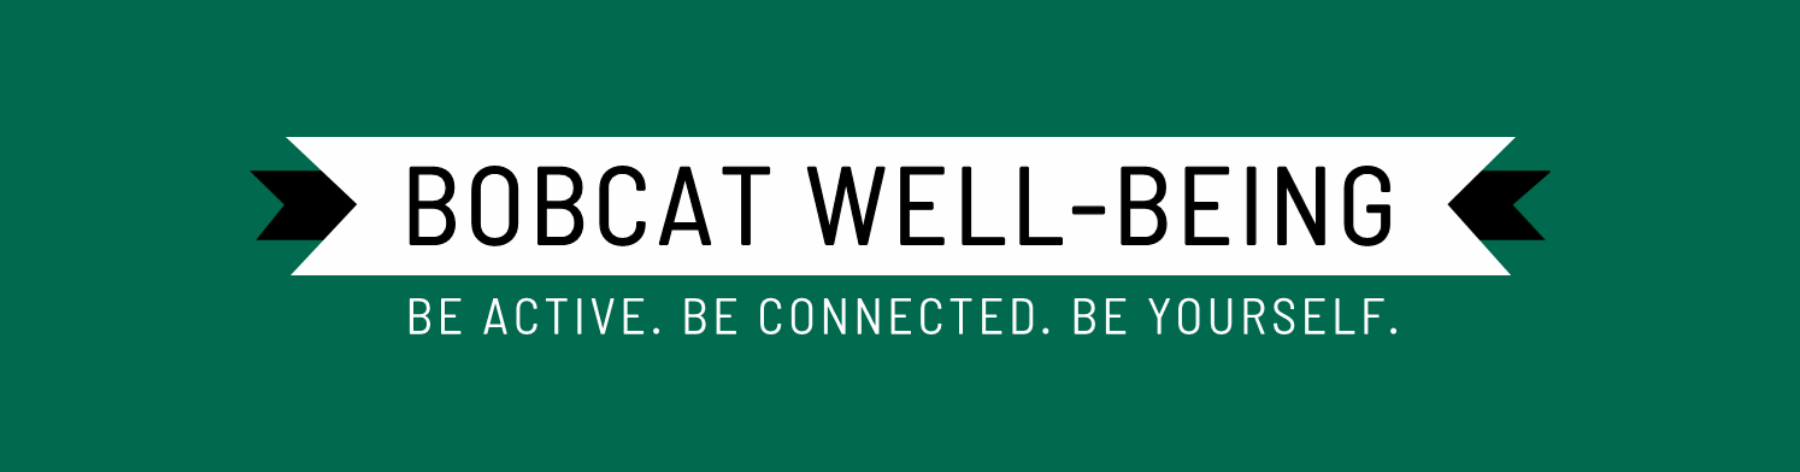 Bobcat Well-being Be active. Be Connected. Be Yourself